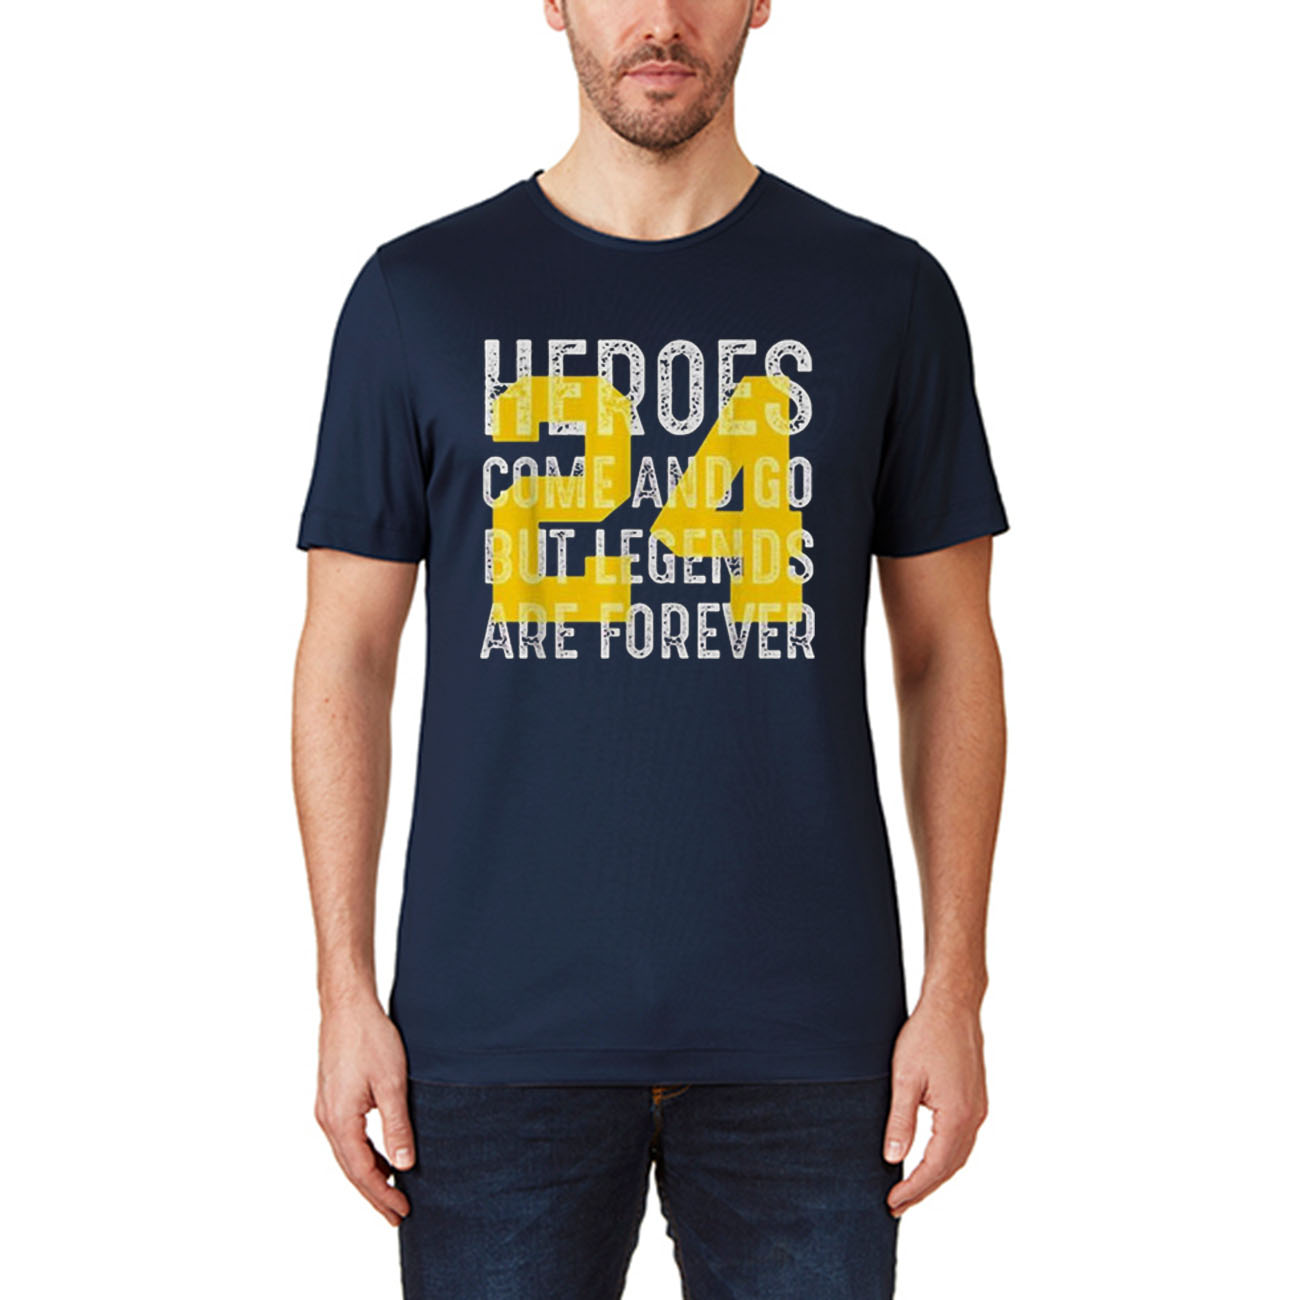 Heroes come and go but legends are forever 24 kobe bryant Unisex T-Shirts